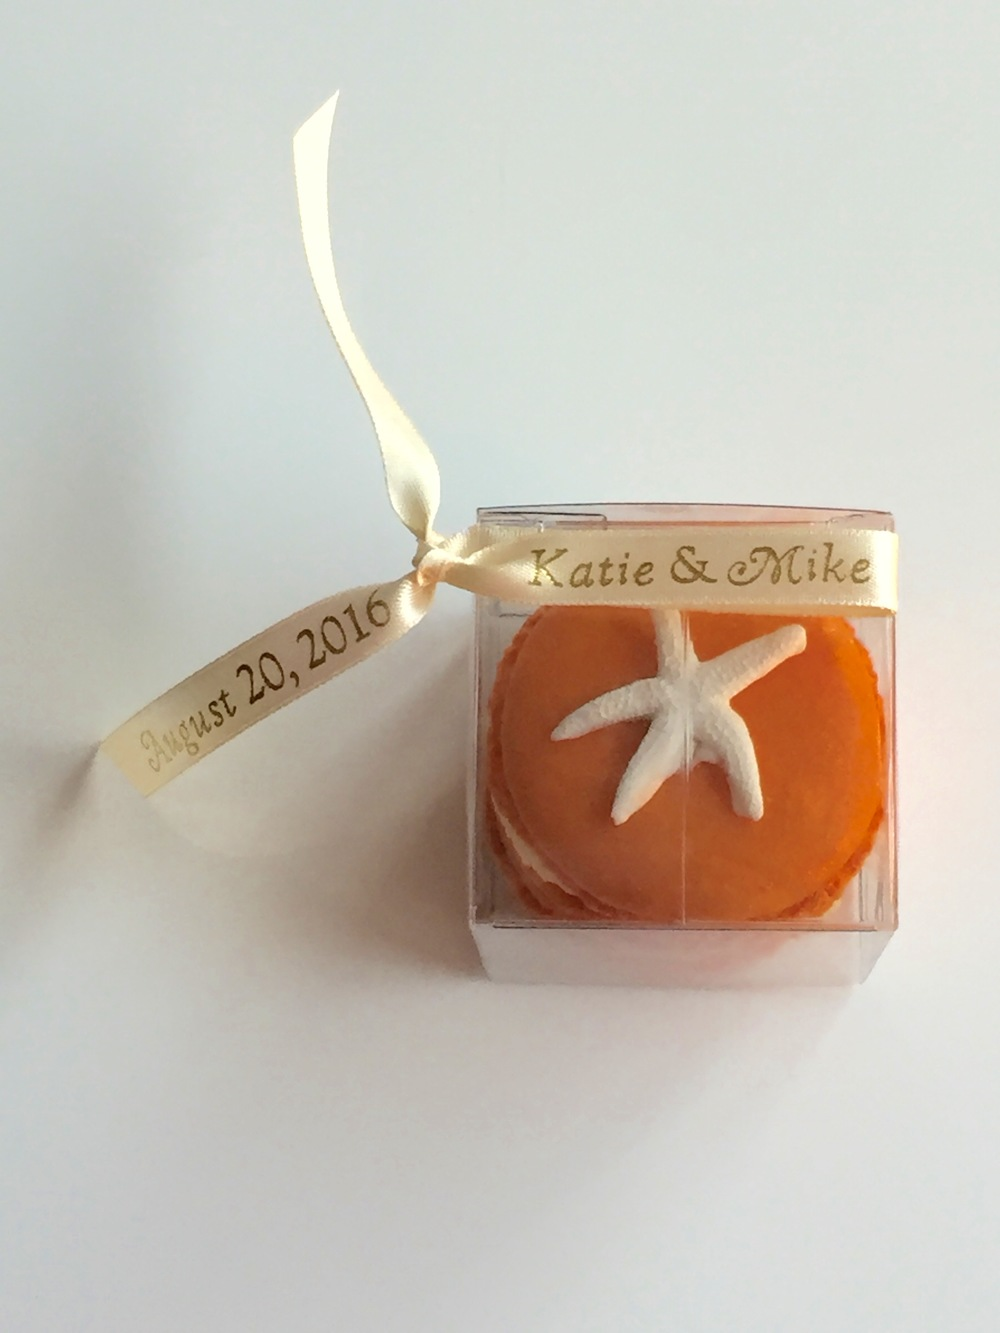 Personalized favors in your choice of ribbon color and metallic font color (gold, rose gold, silver). As shown $7.